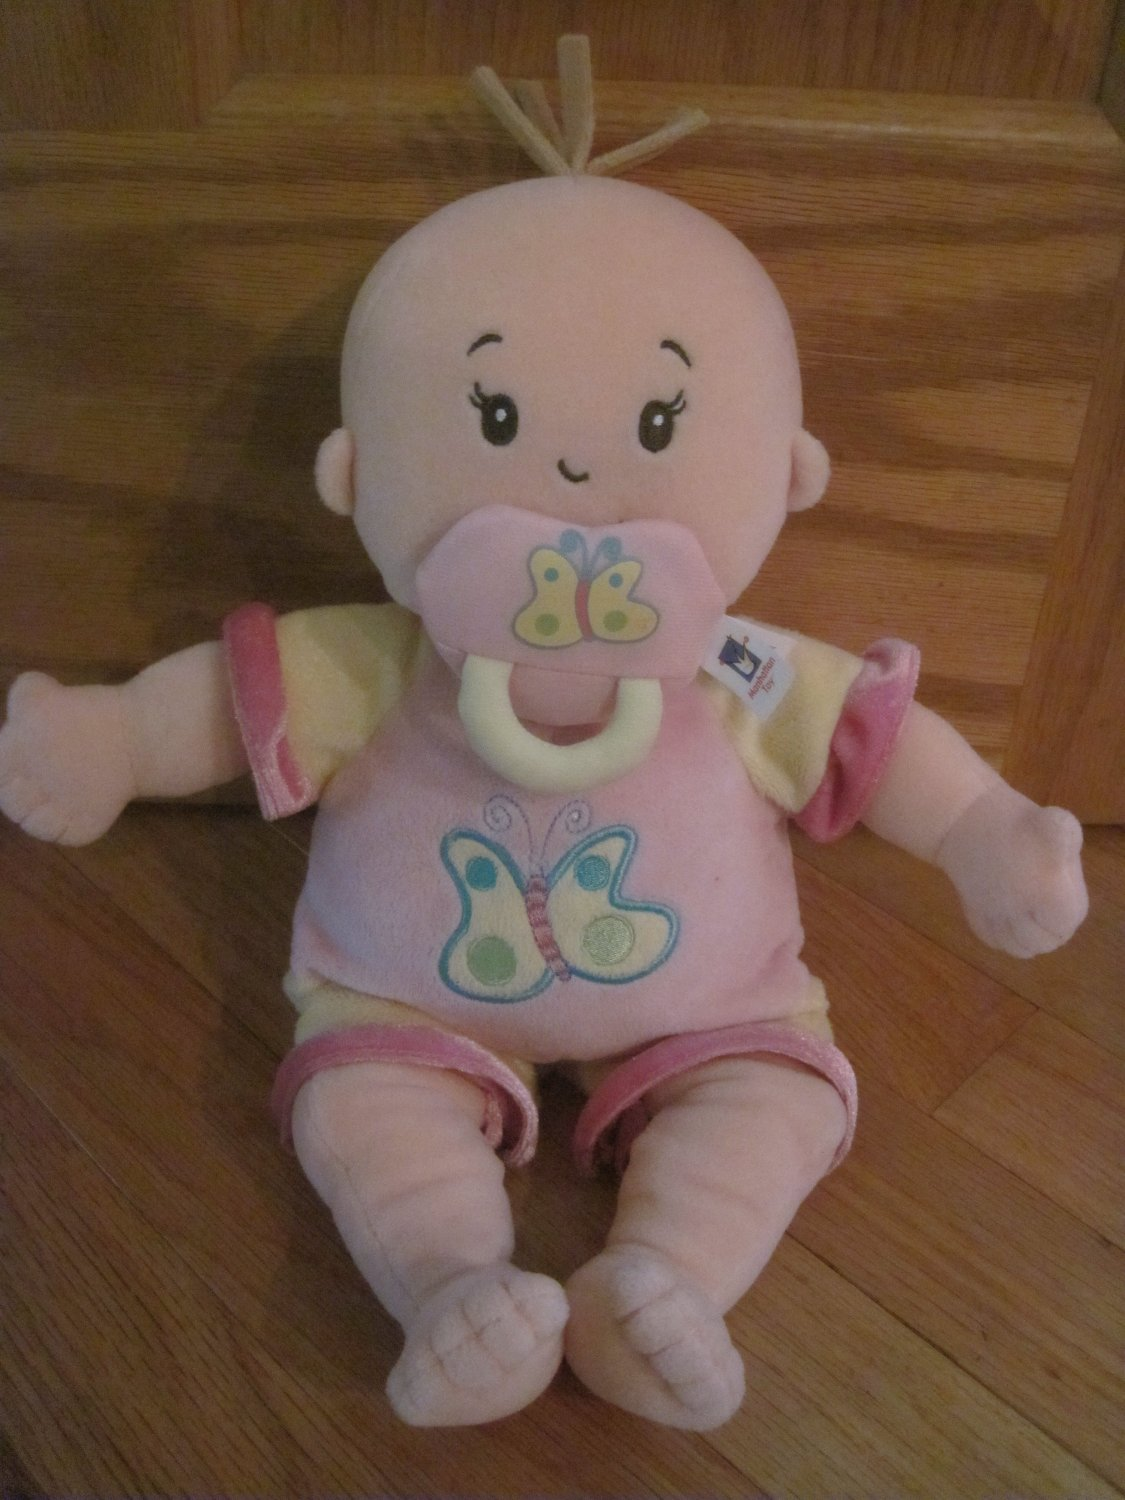 Manhattan Toys Plush Baby Doll Named Stella with Pacifier Blond Hair Butterfly Outfit 2005